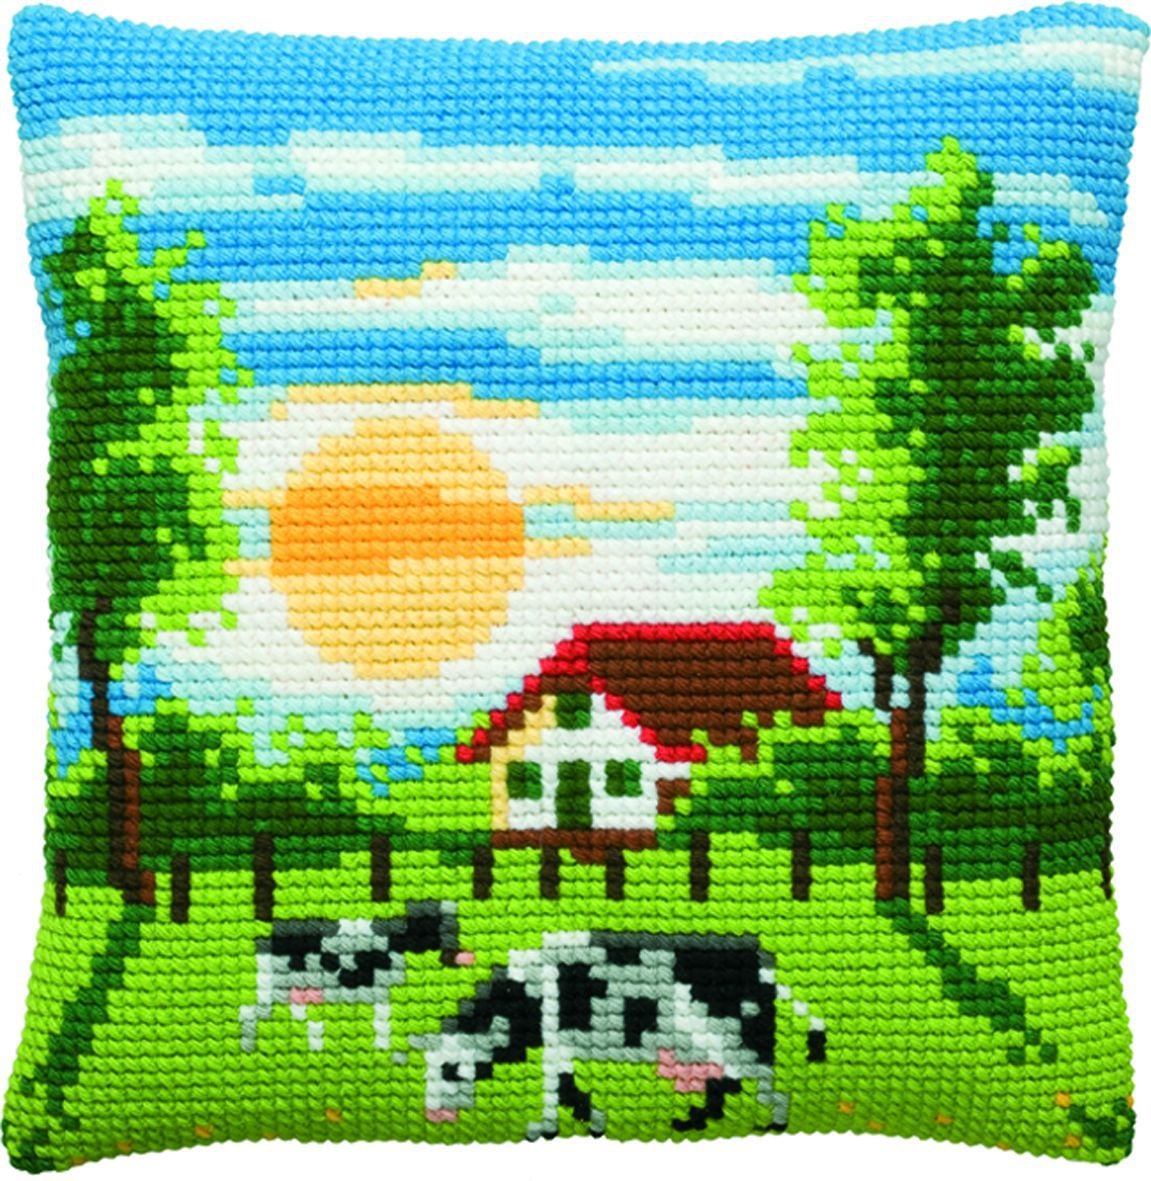 cross stitch cushion kit dutch landscape printed